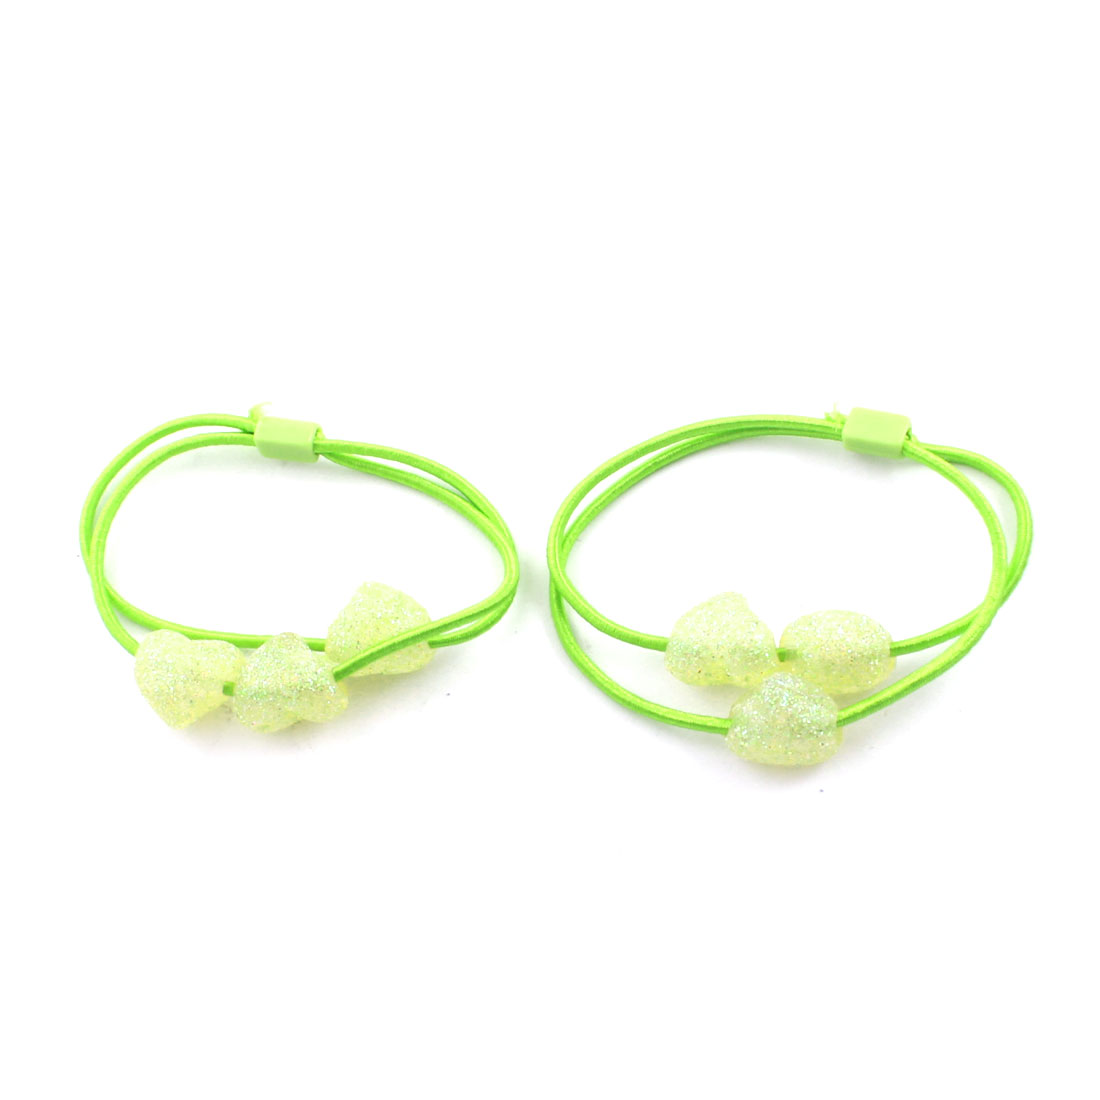 2 Pcs Glittery Heart Shape Beads Accent Stretchy Hair Bands Ponytail Holder Green